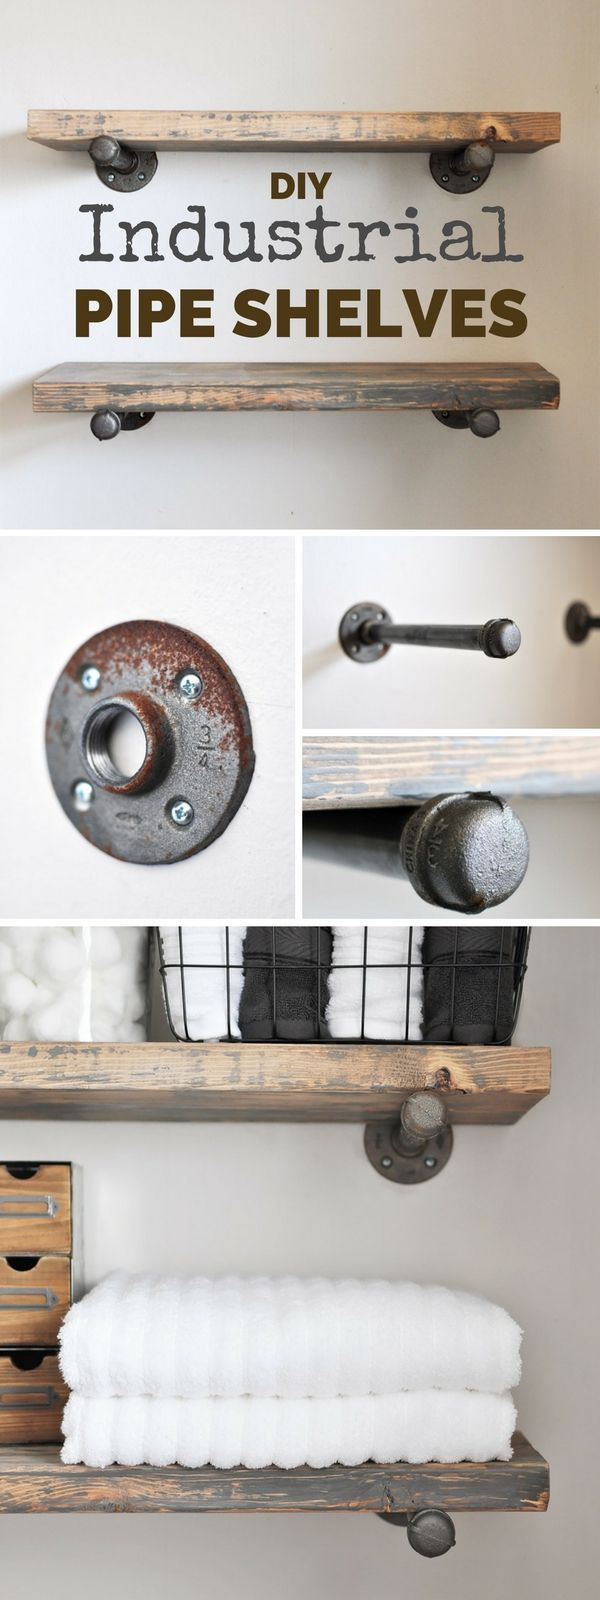 Check out the tutorial: #DIY Industrial Pipe Shelves @istandarddesign